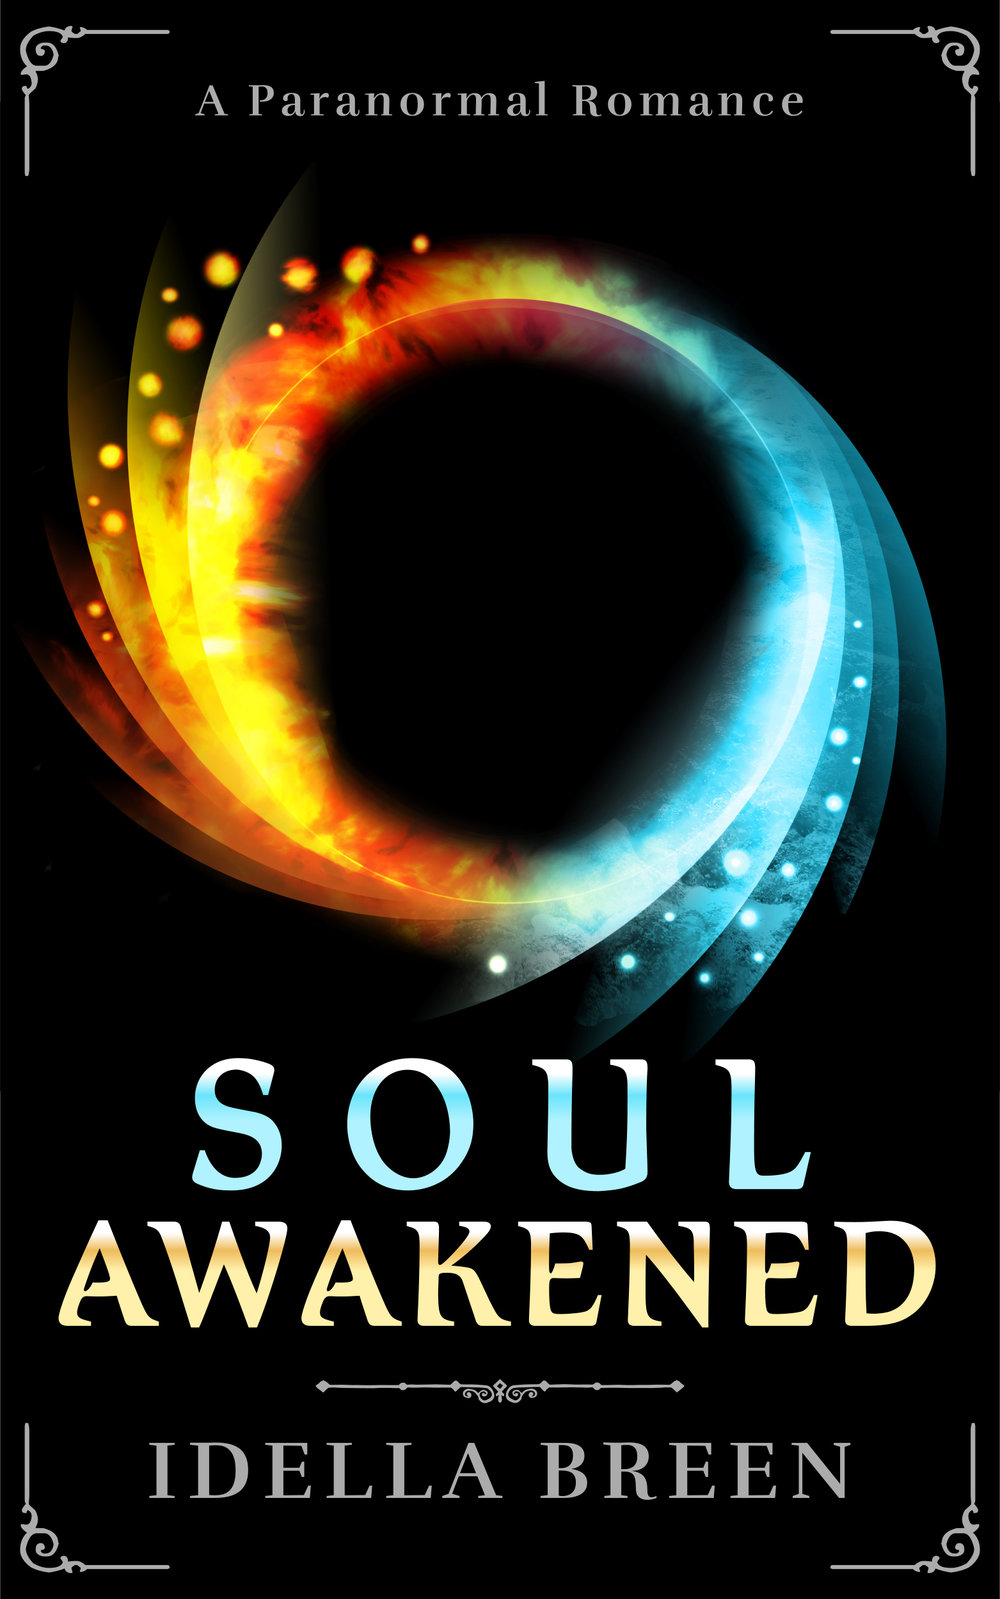 Copy of Soul Awakened - High Resolution.jpg